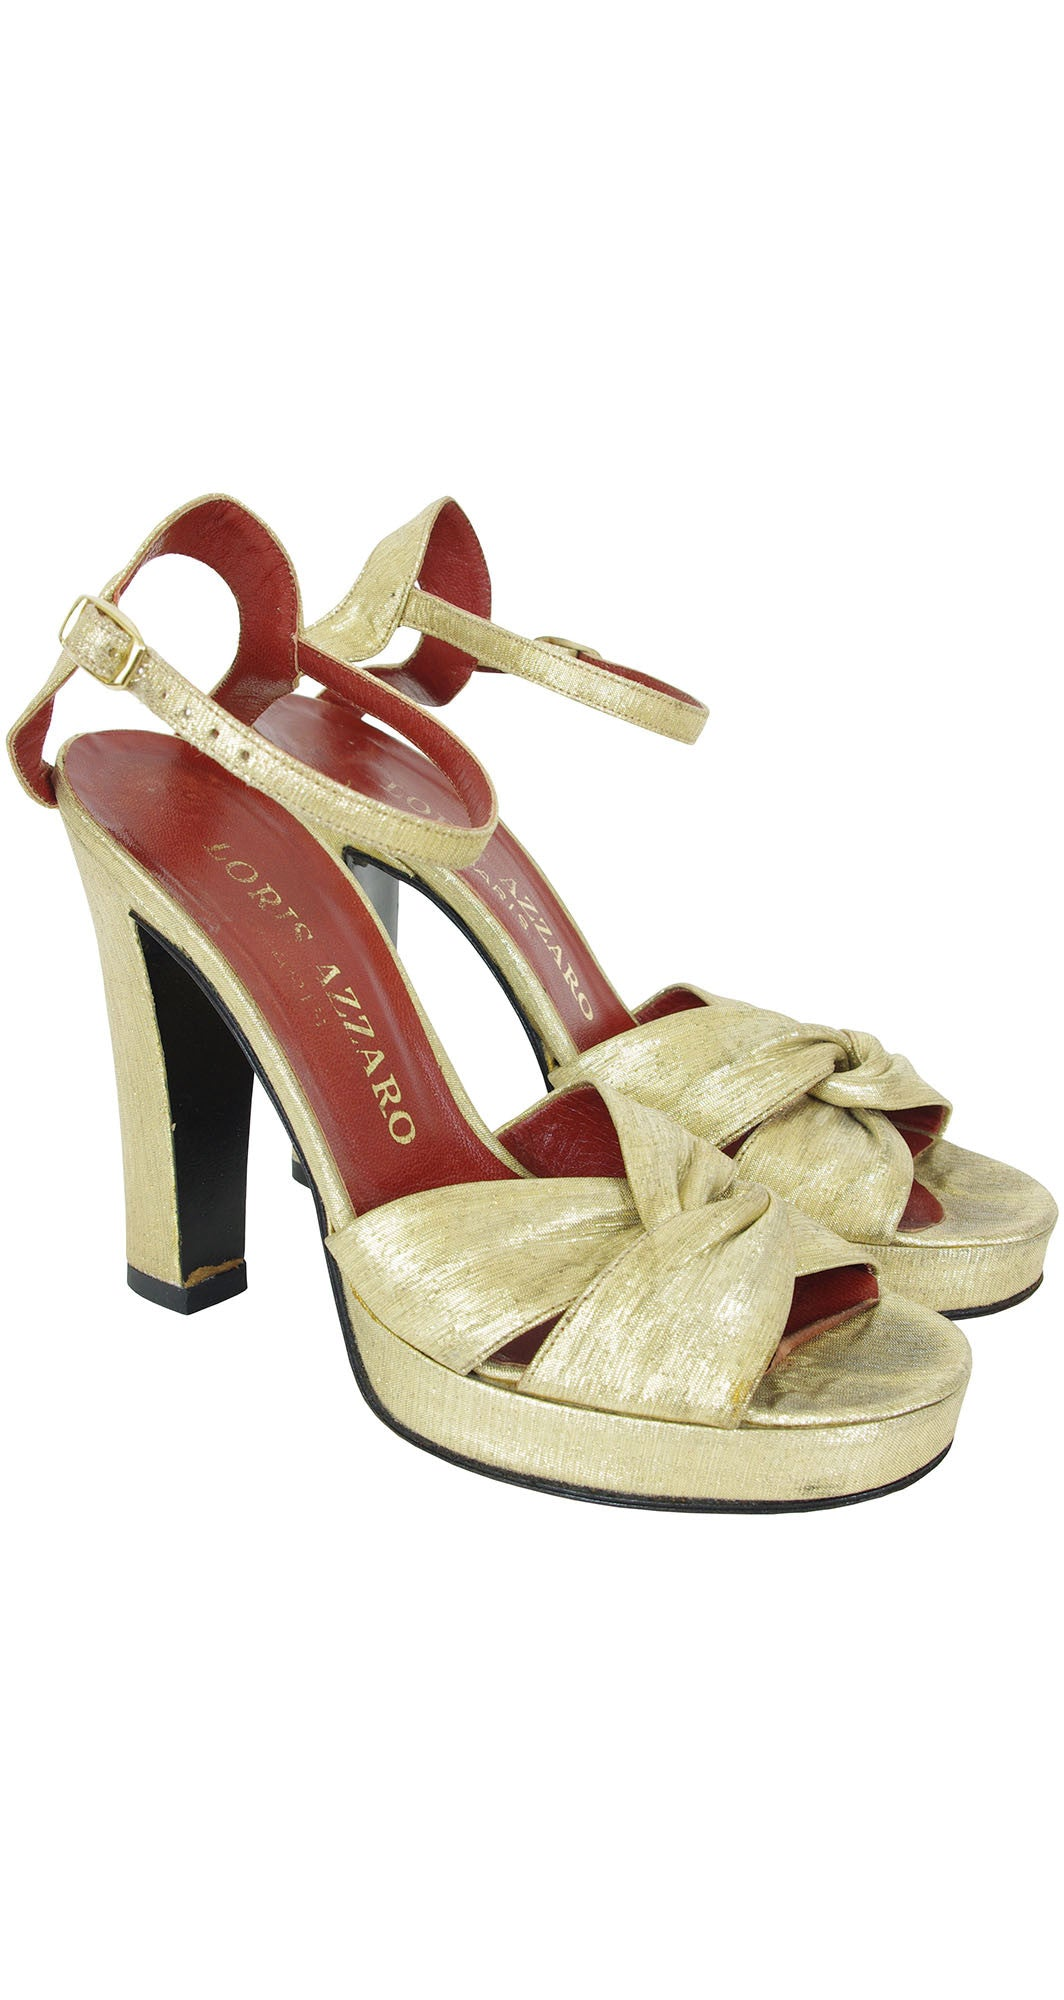 1970s Gold Metallic Ankle Strap Platform Shoes